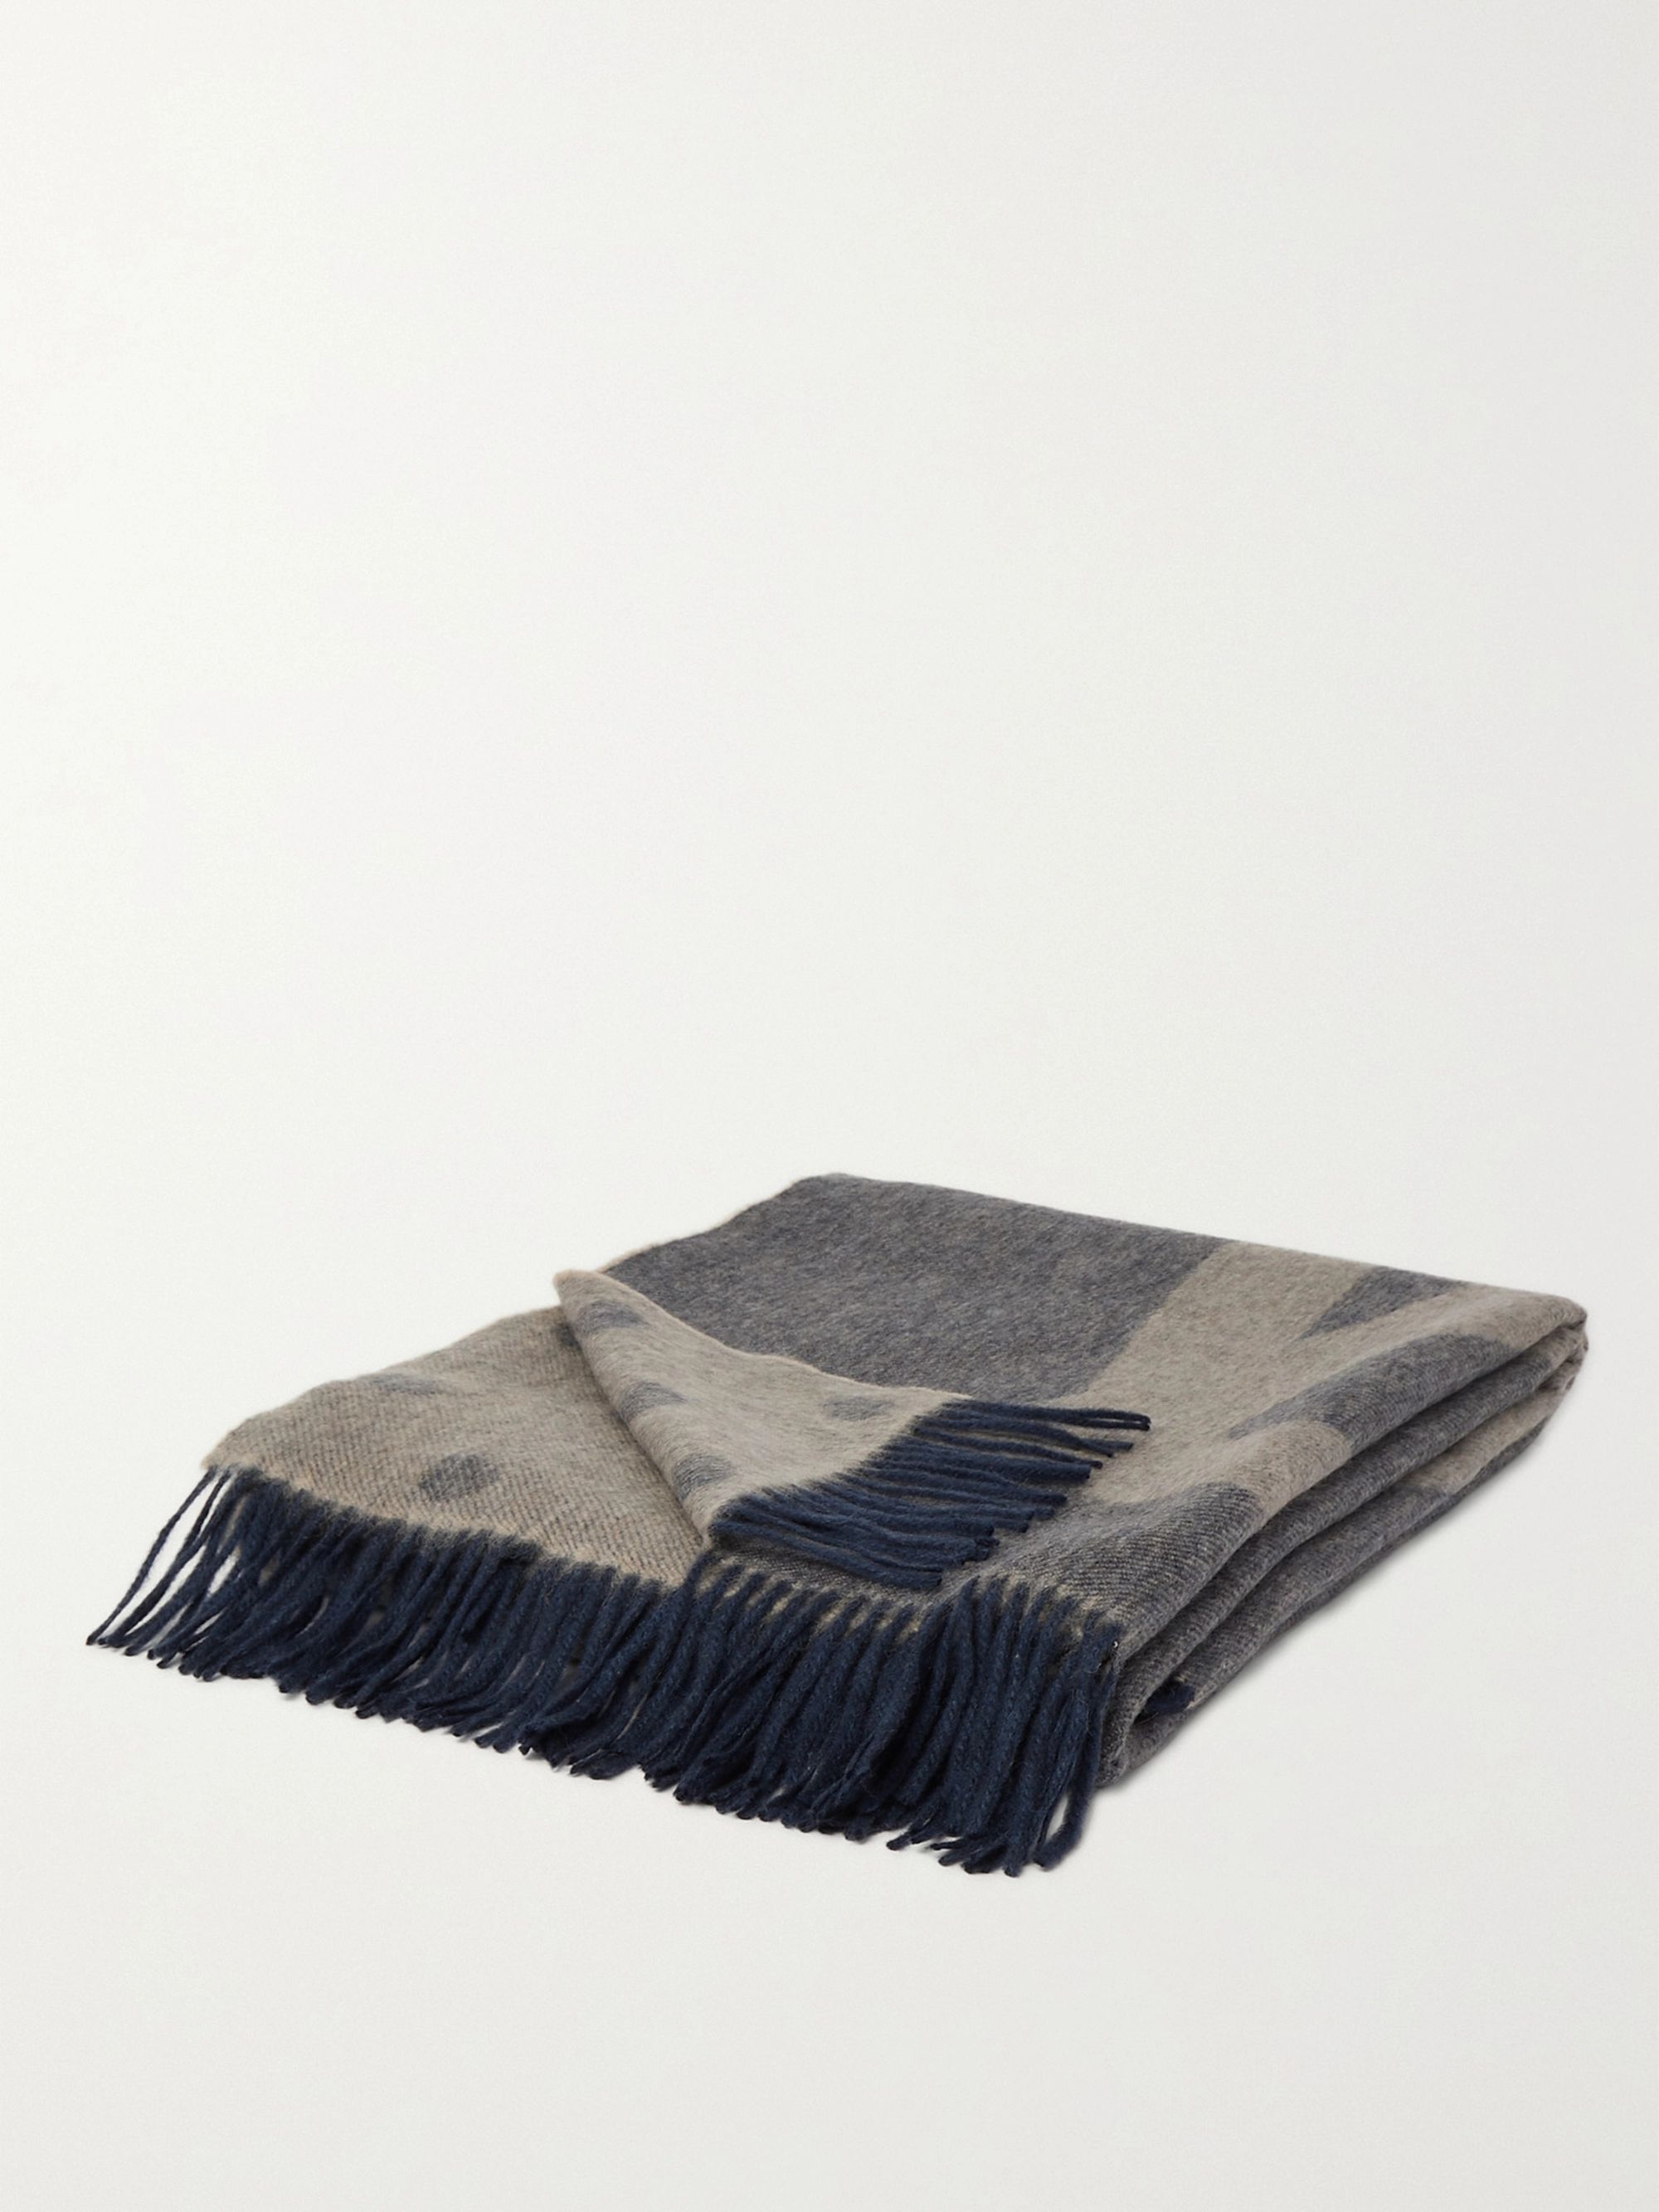 PAUL SMITH Fringed Wool and Cashmere-Blend Jacquard Blanket